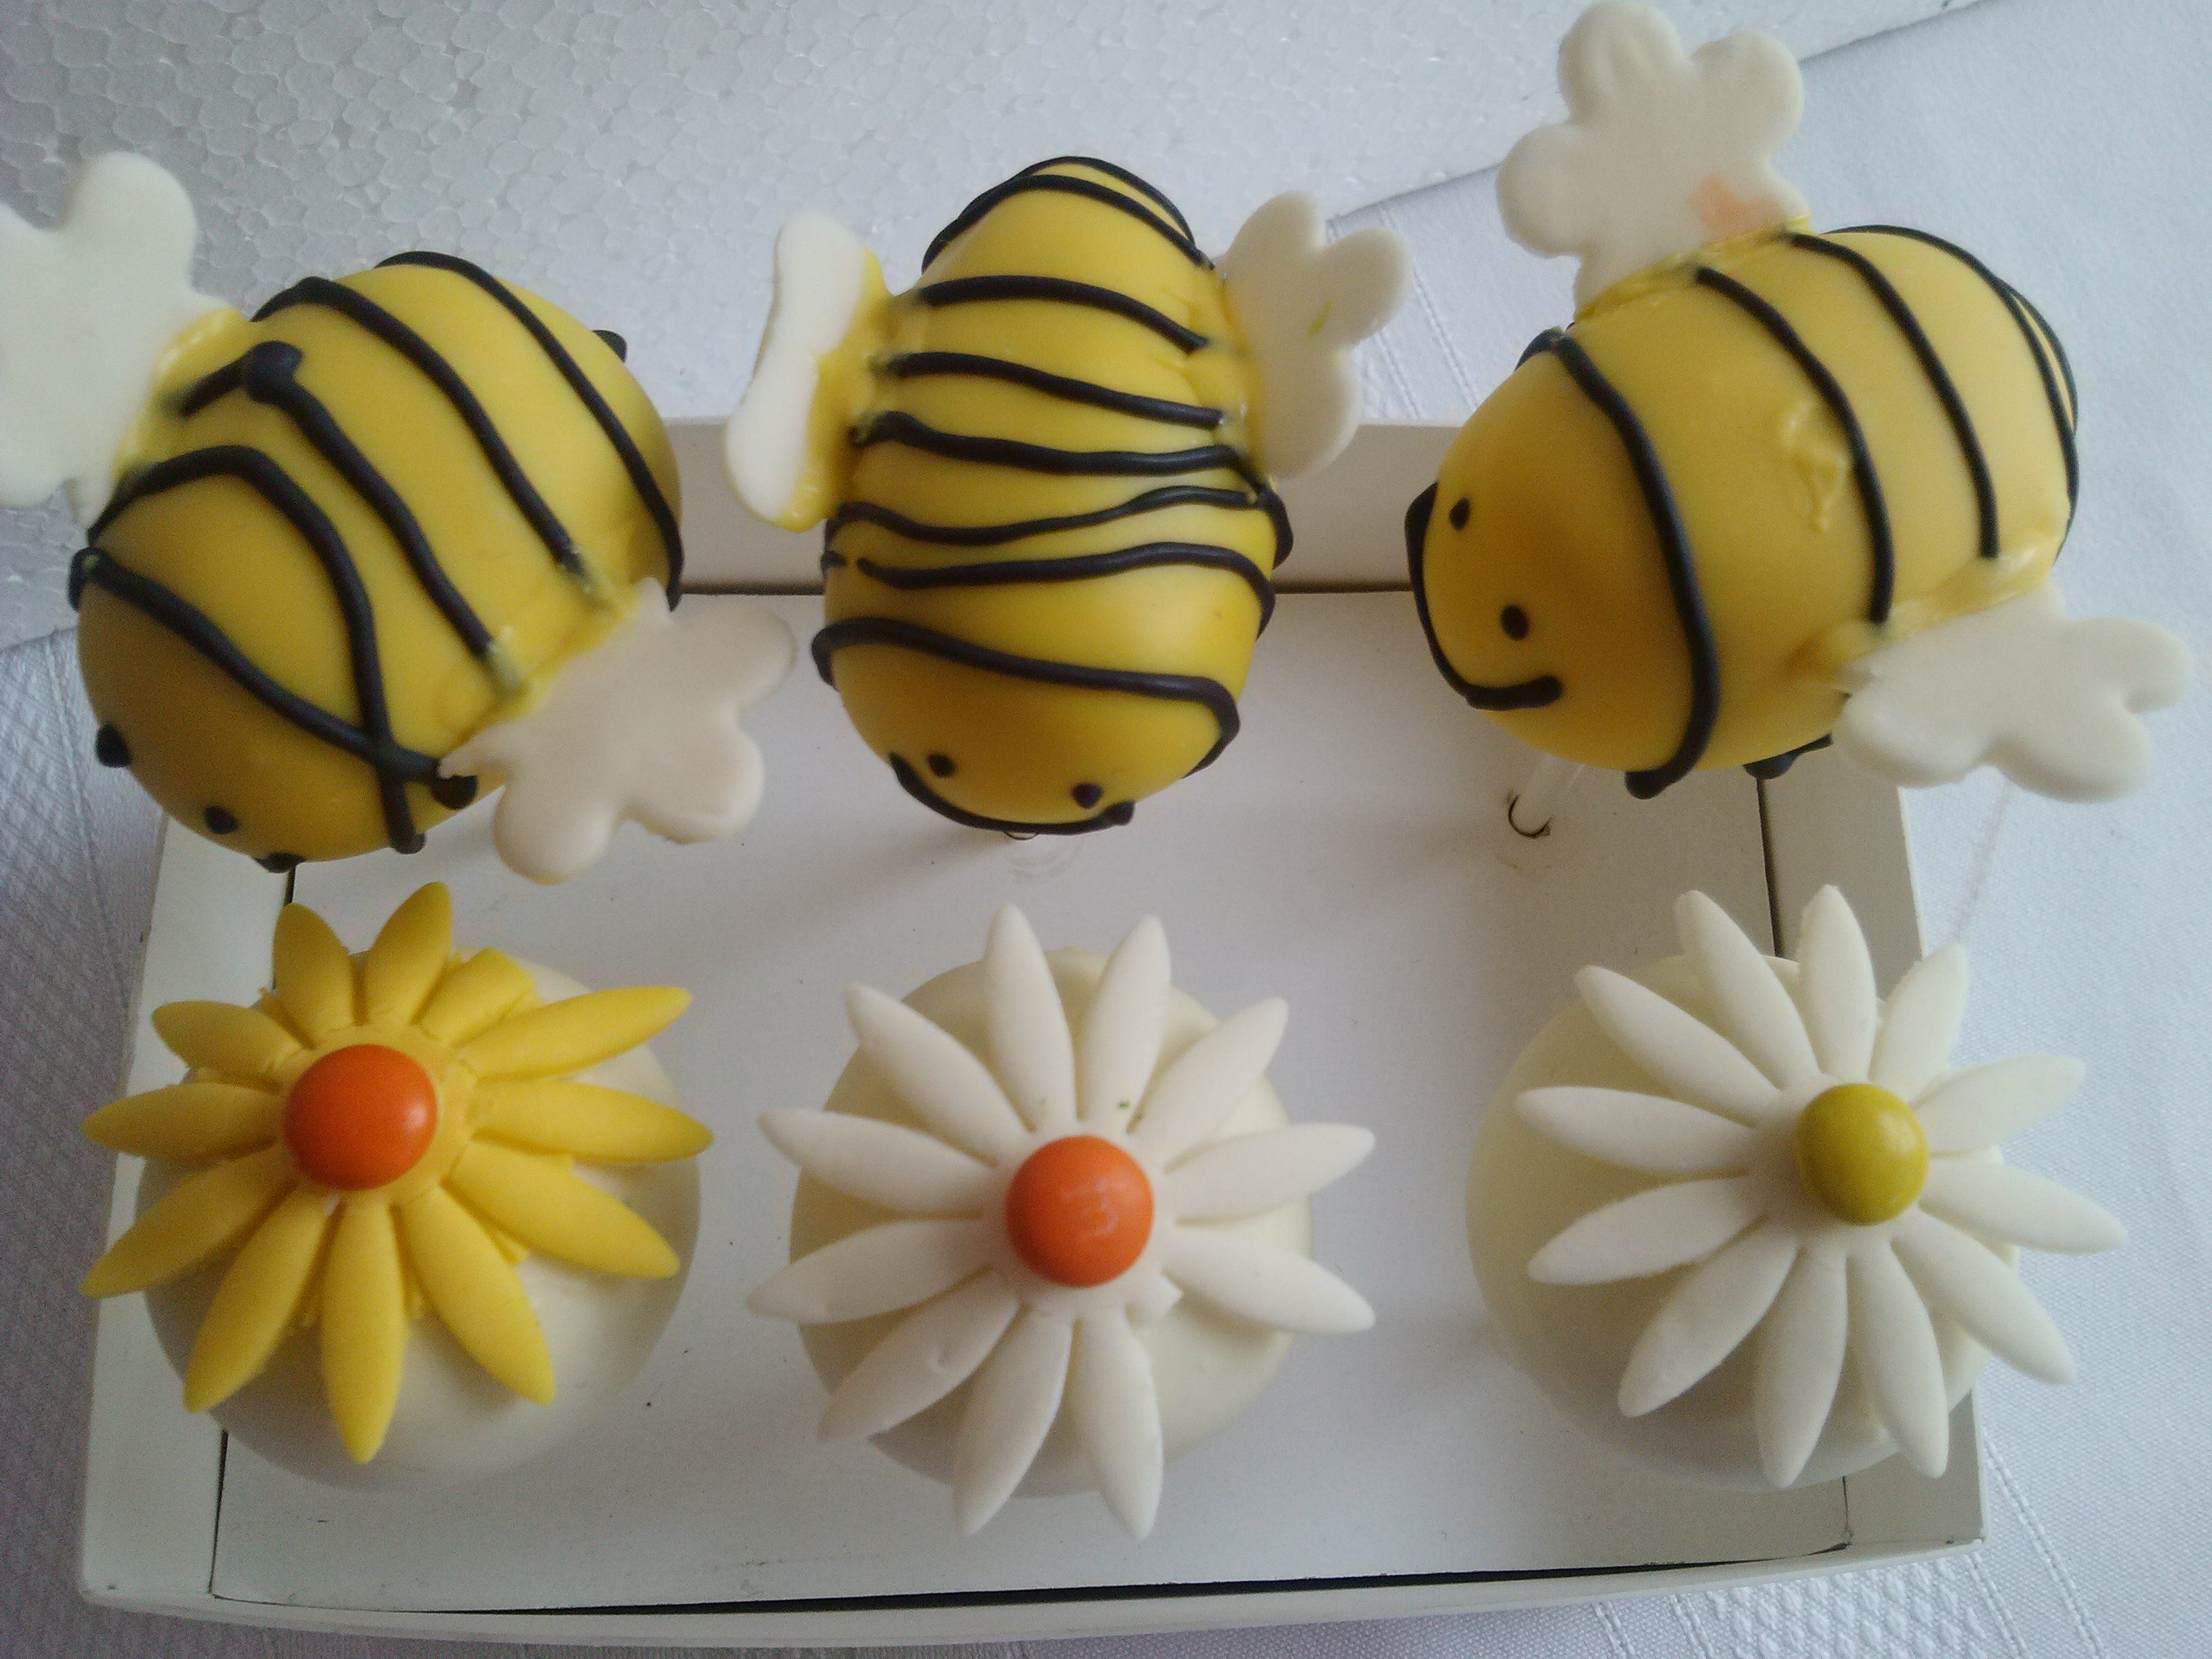 Bumble Bee Cake Pops by Poppers Cake Pops & Balls, Los Mochis, Sin, Mexico